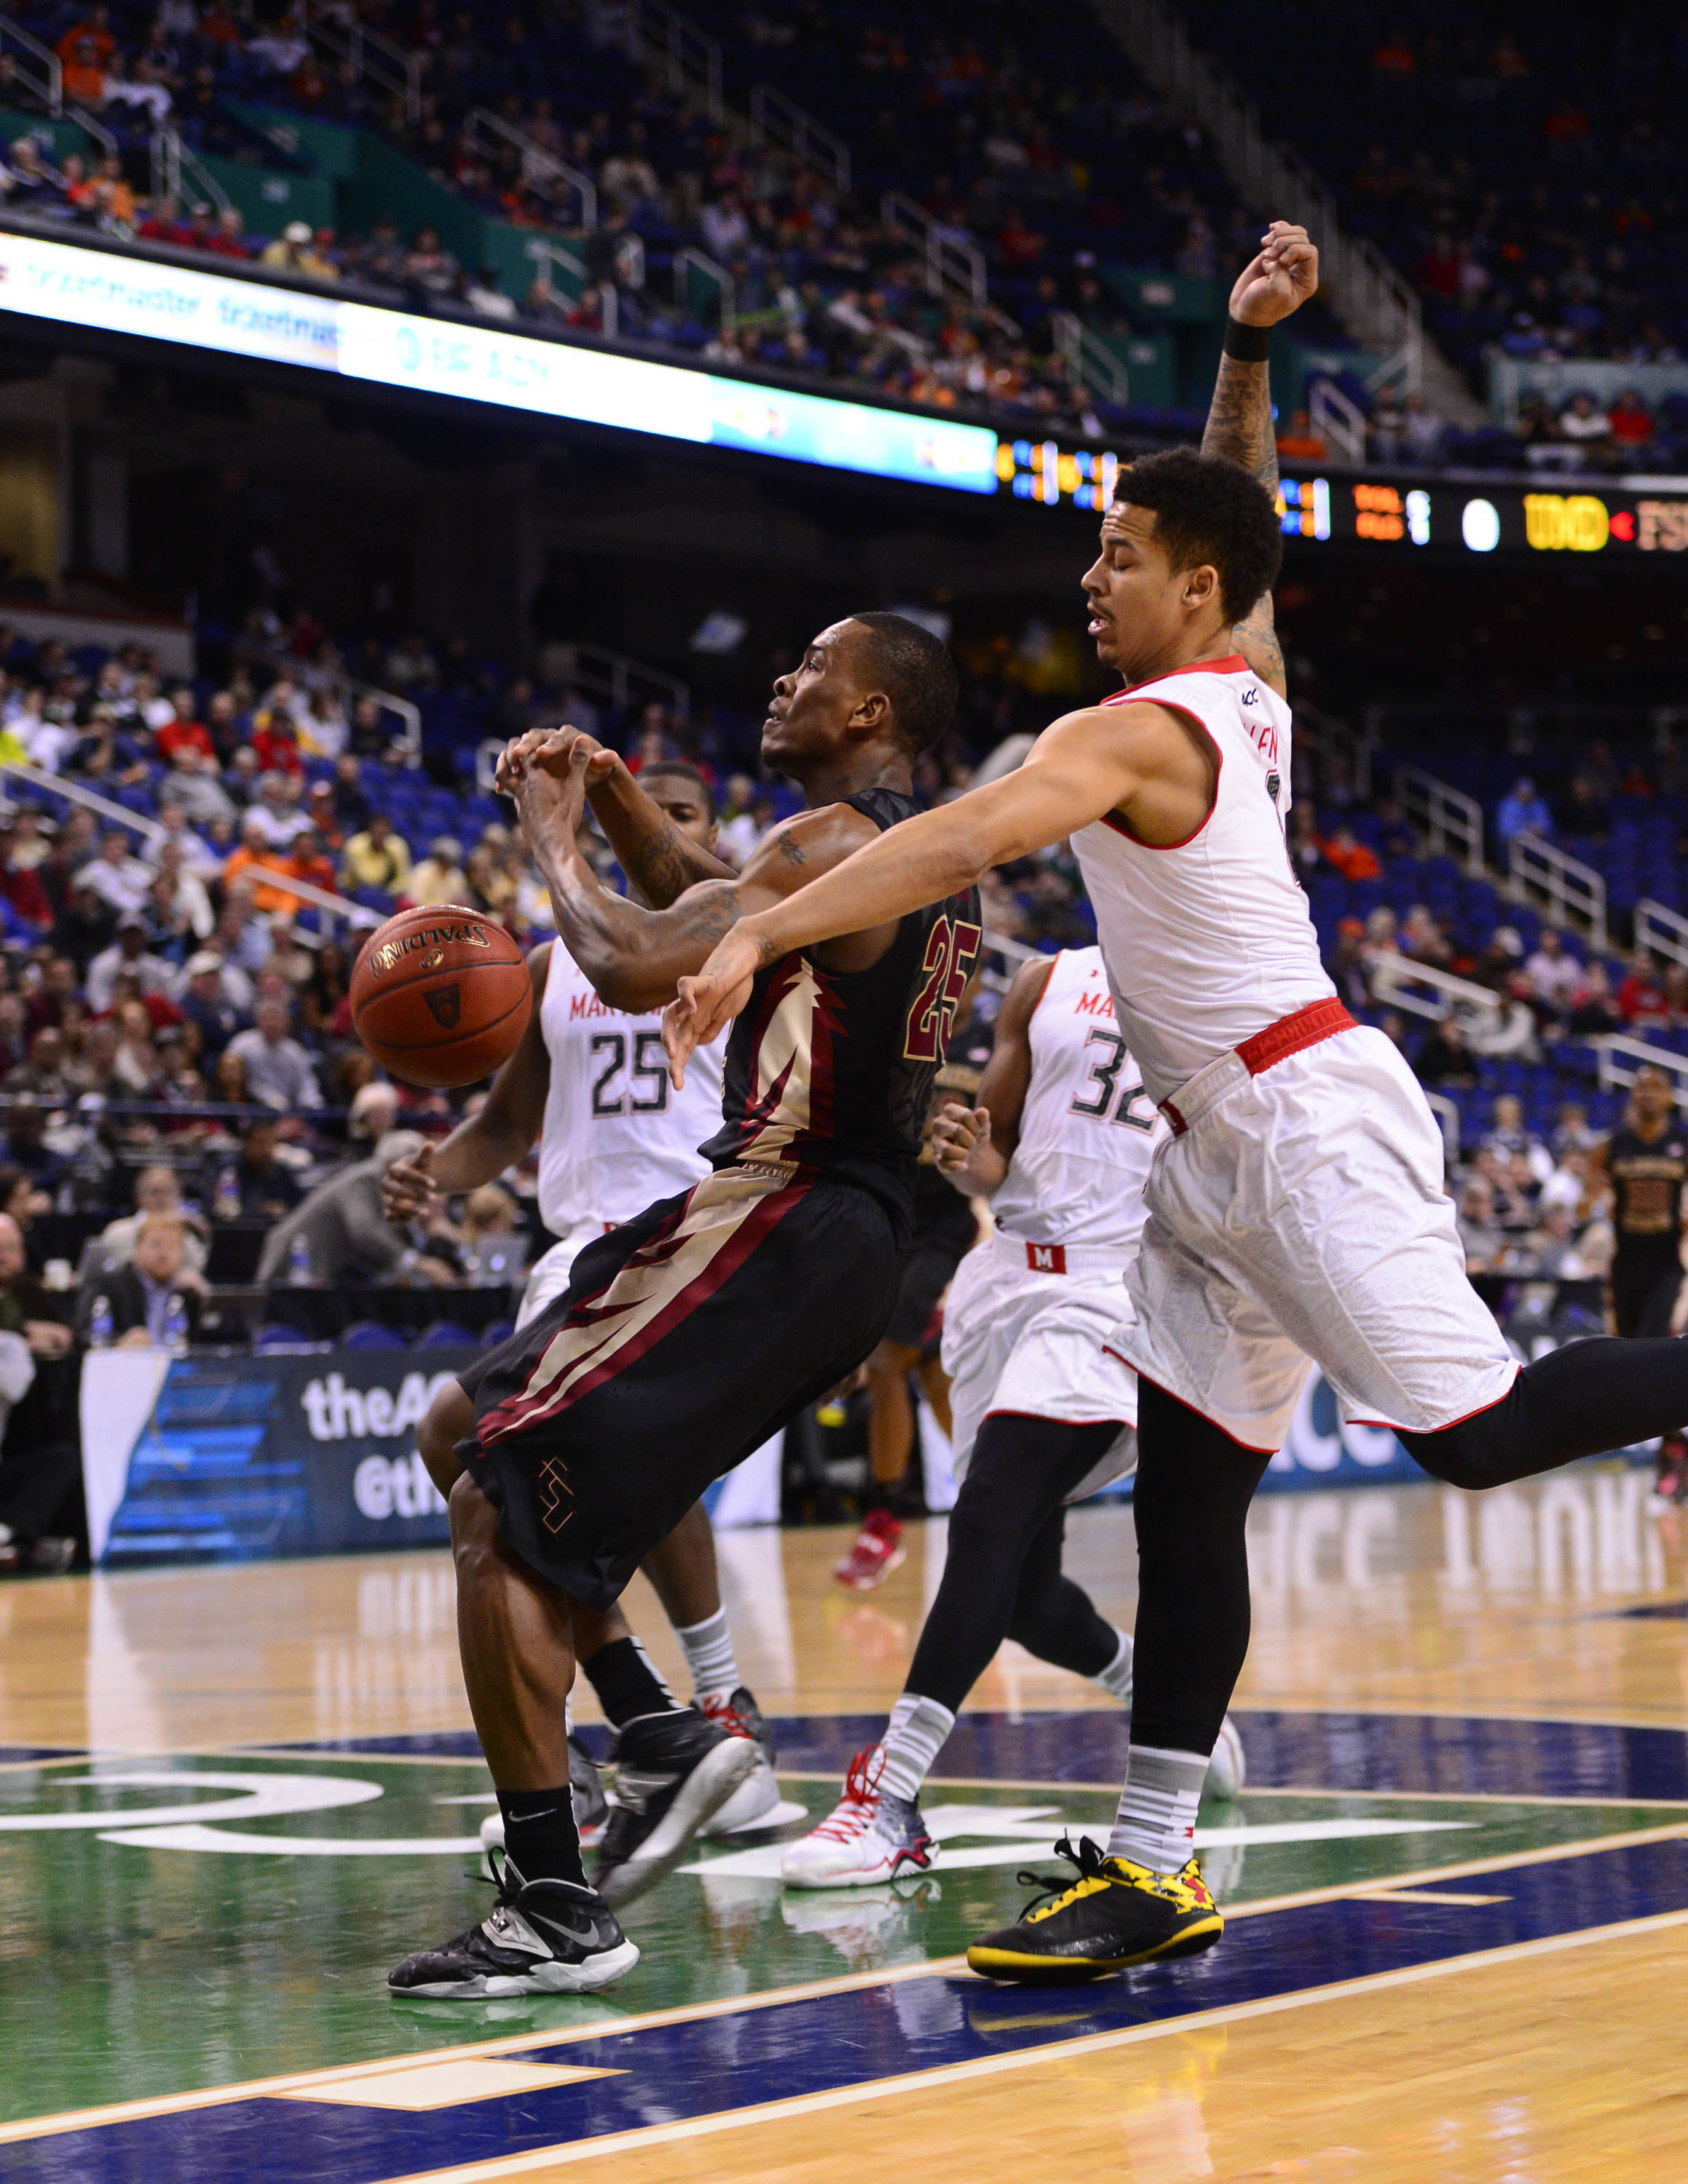 Maryland Terrapins guard Seth Allen (4) knocks the ball free from Florida State Seminoles guard Aaron Thomas (25) in the first half in the second round of the ACC college basketball tournament at Greensboro Coliseum. Mandatory Credit: Bob Donnan-USA TODAY Sports